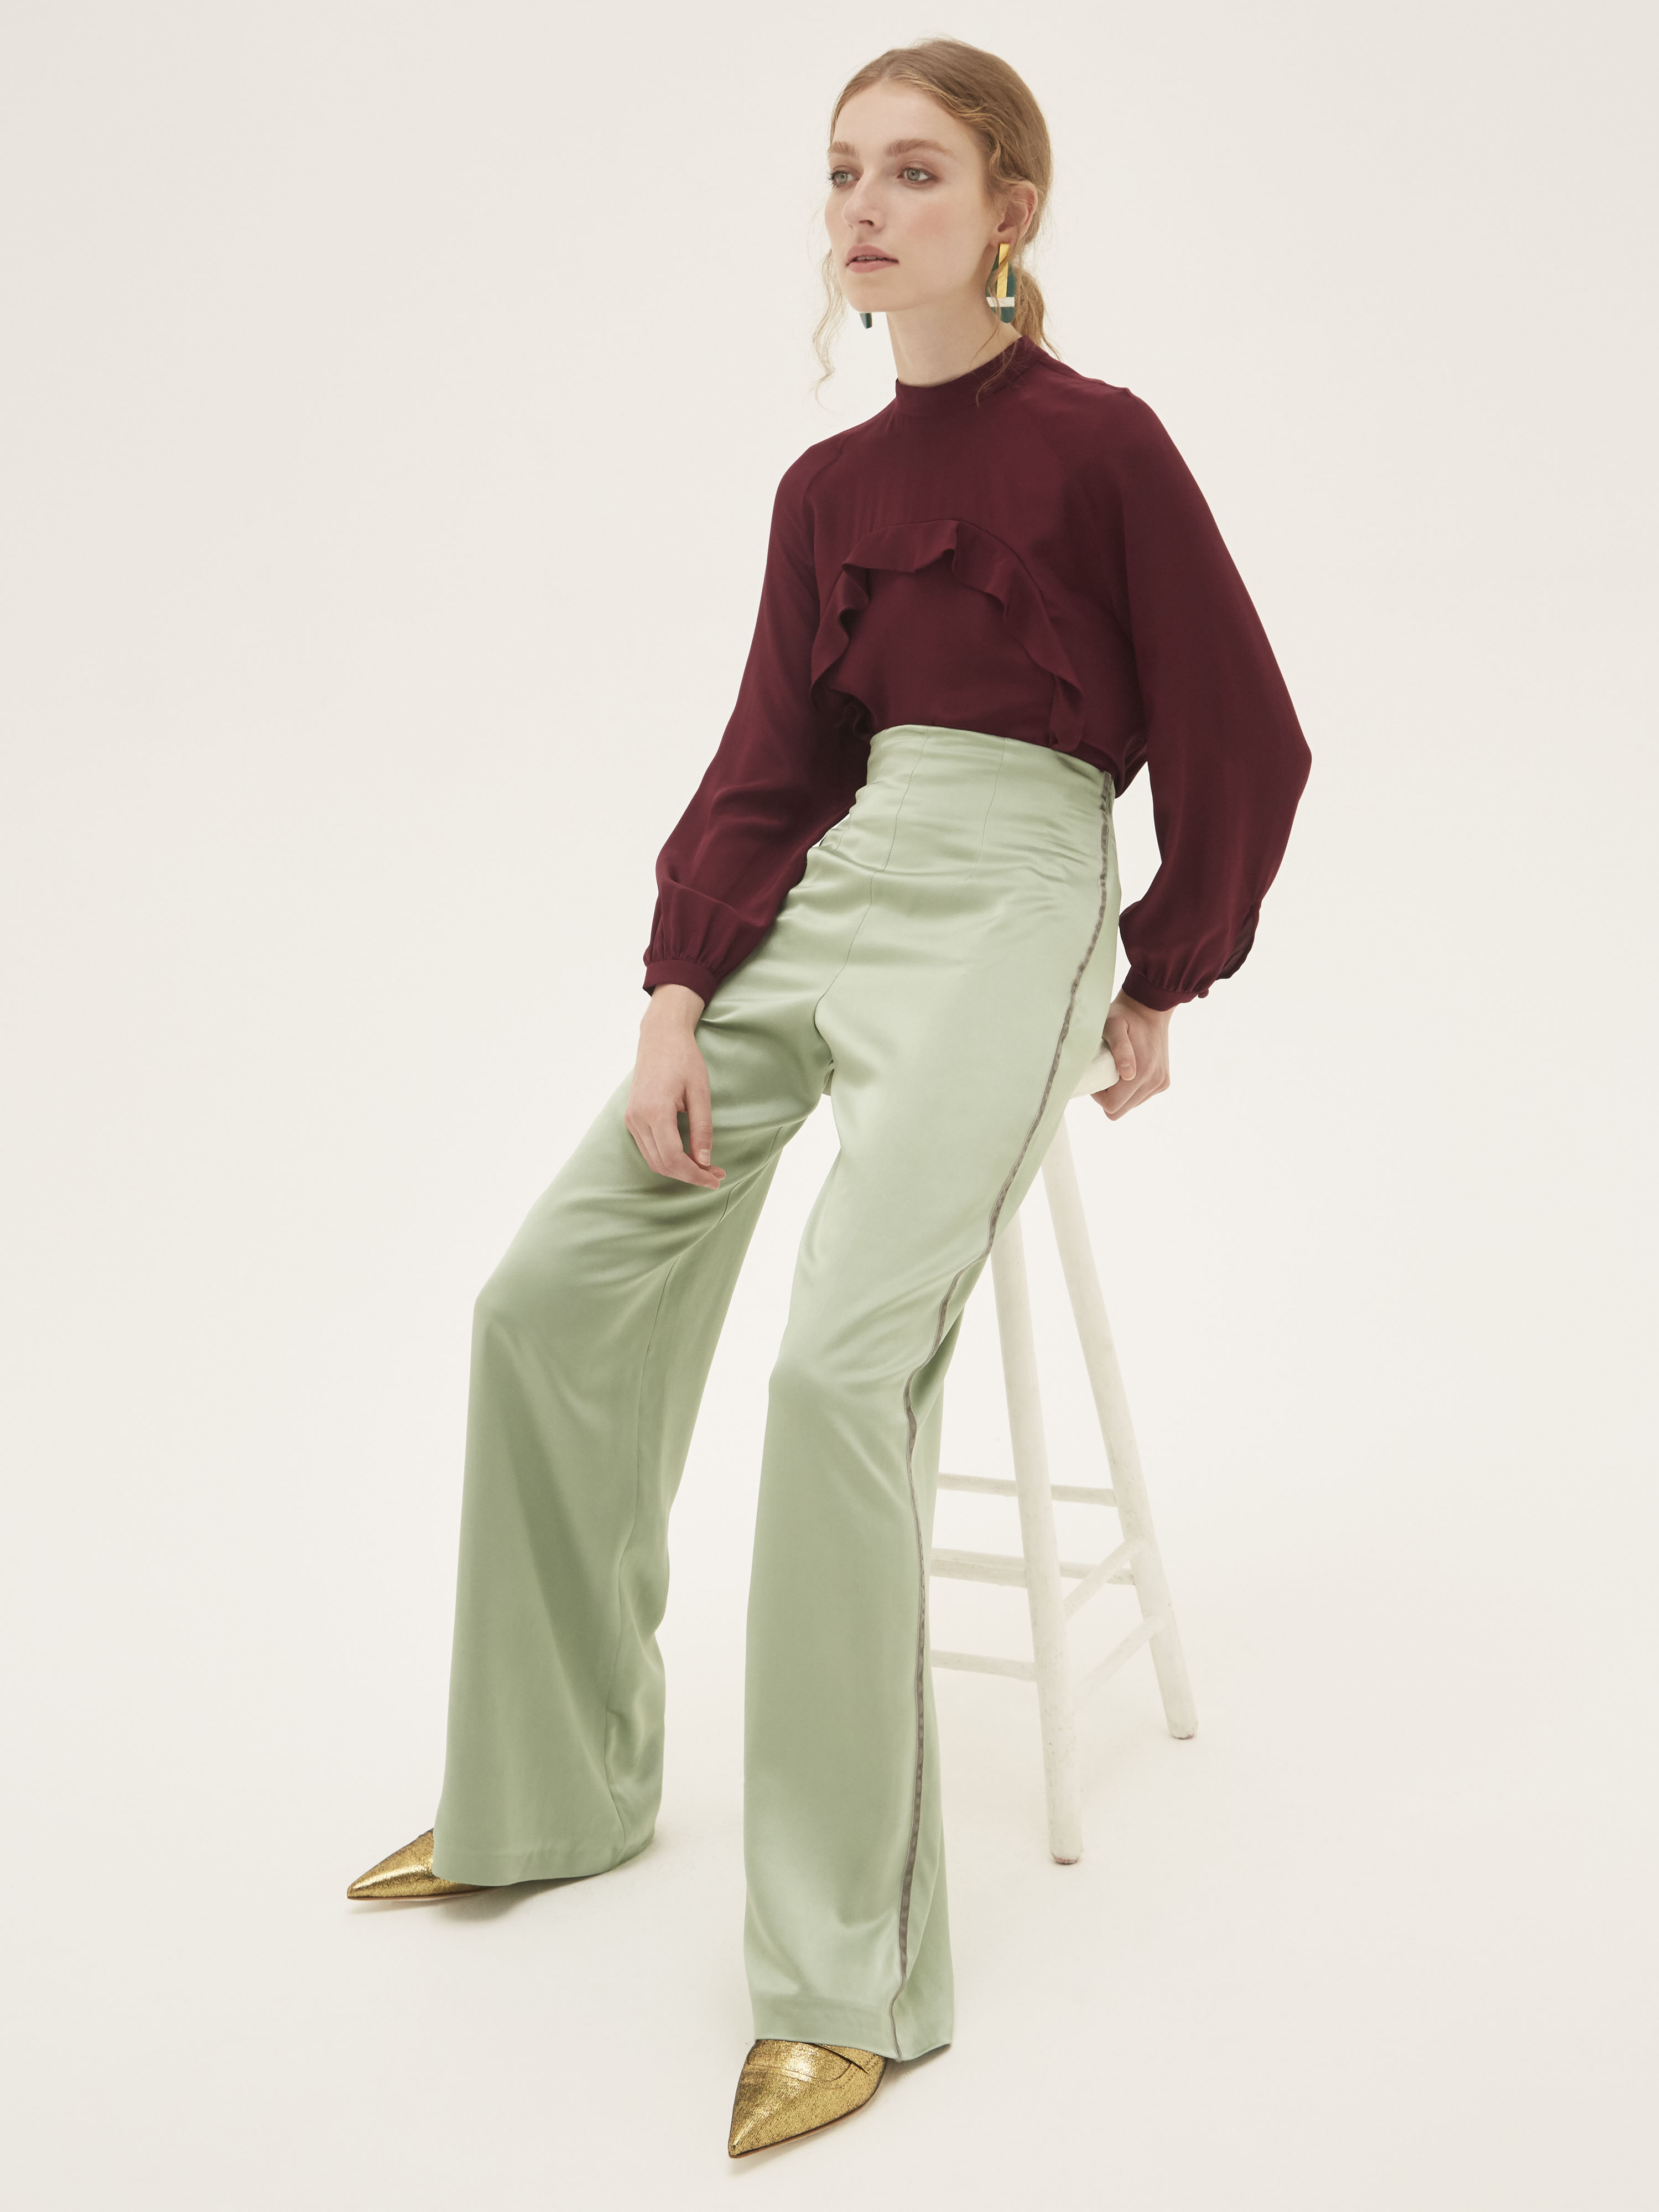 Elysian Trousers by Bozena Jankowska on curated-crowd.com